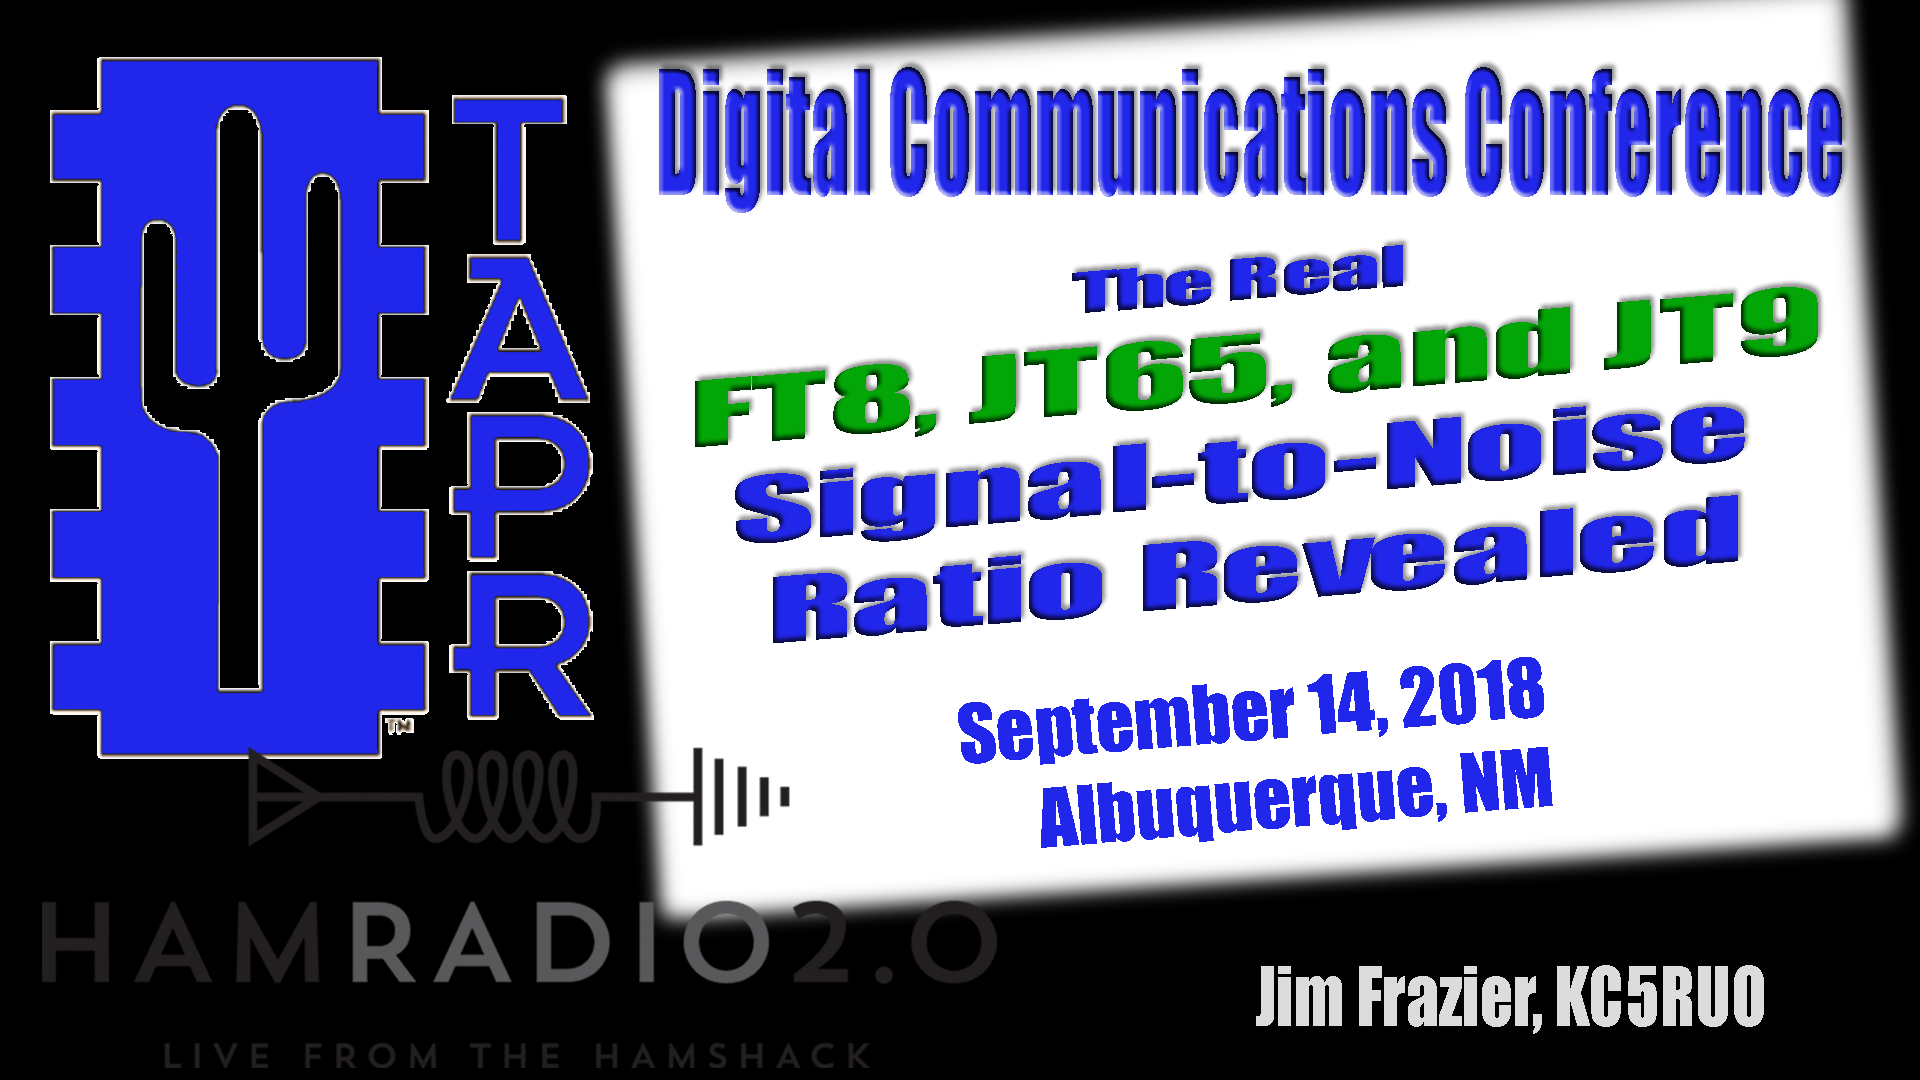 Episode 152: TAPR DCC 2018 – The Real FT8, JT65, and JT9 Signal-to-Noise Ratio Revealed